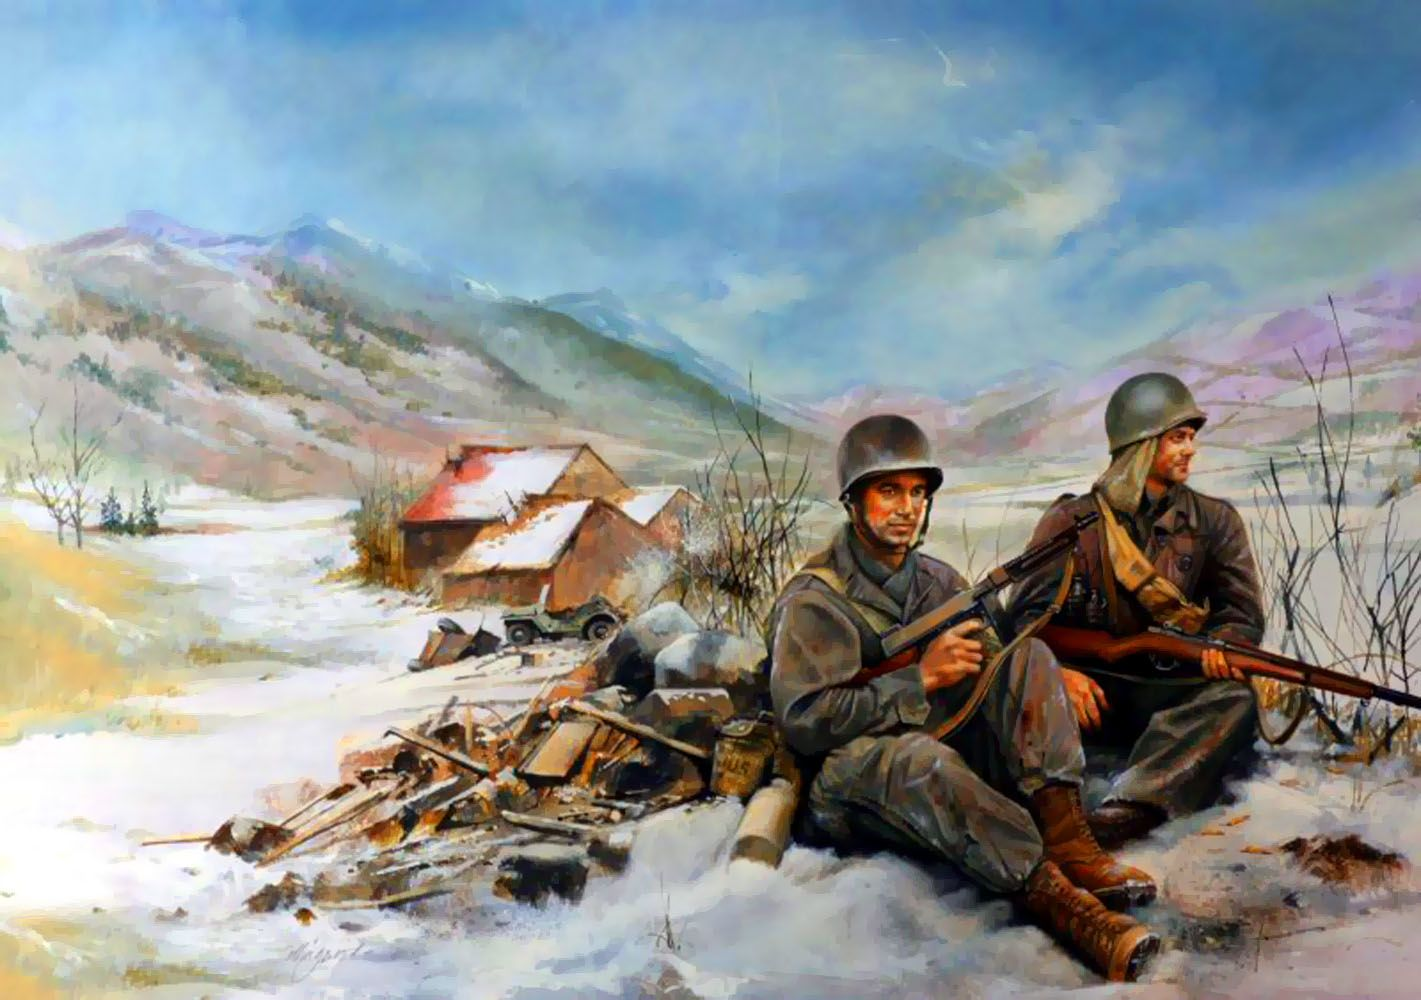 Us Sol Rs During Winter In The Korean War By Chris